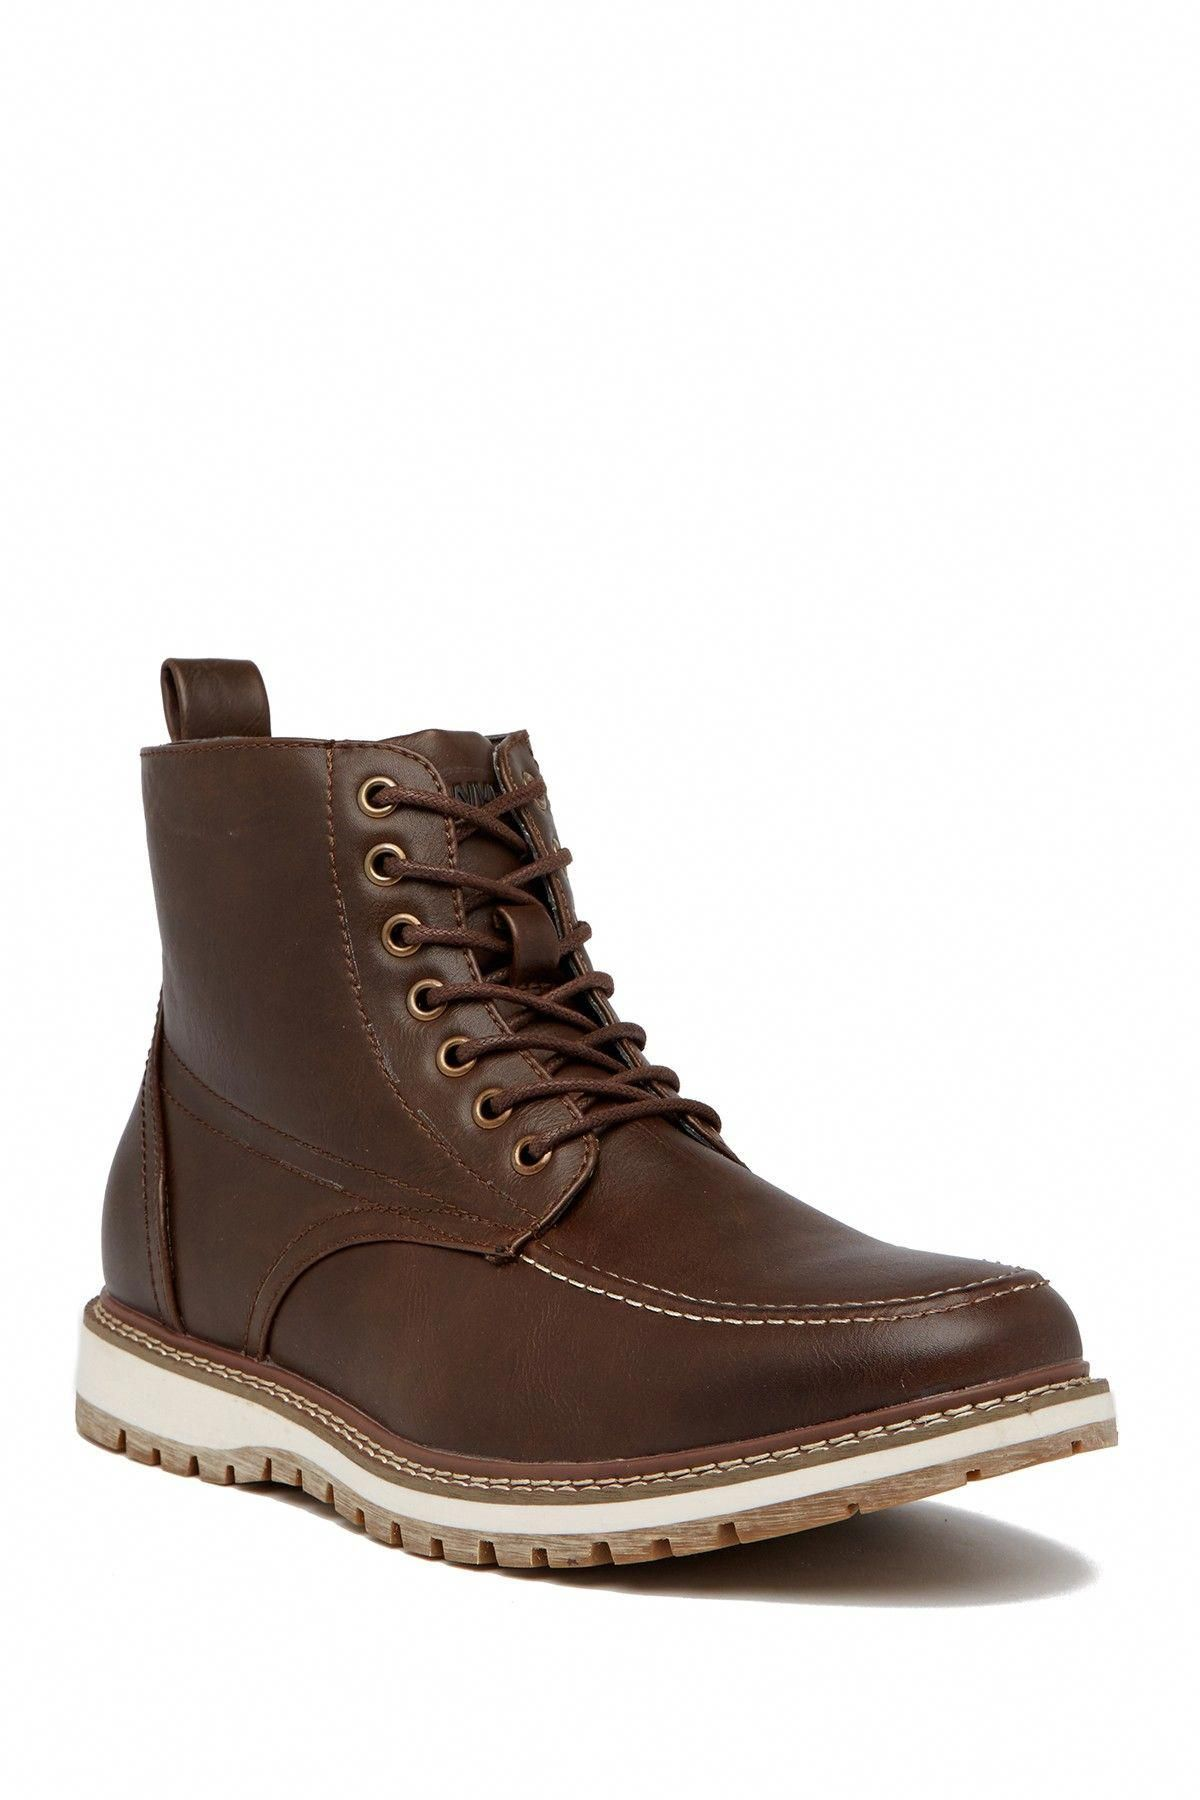 Sierra Leather Boot by Hawke & Co. on nordstrom_rack